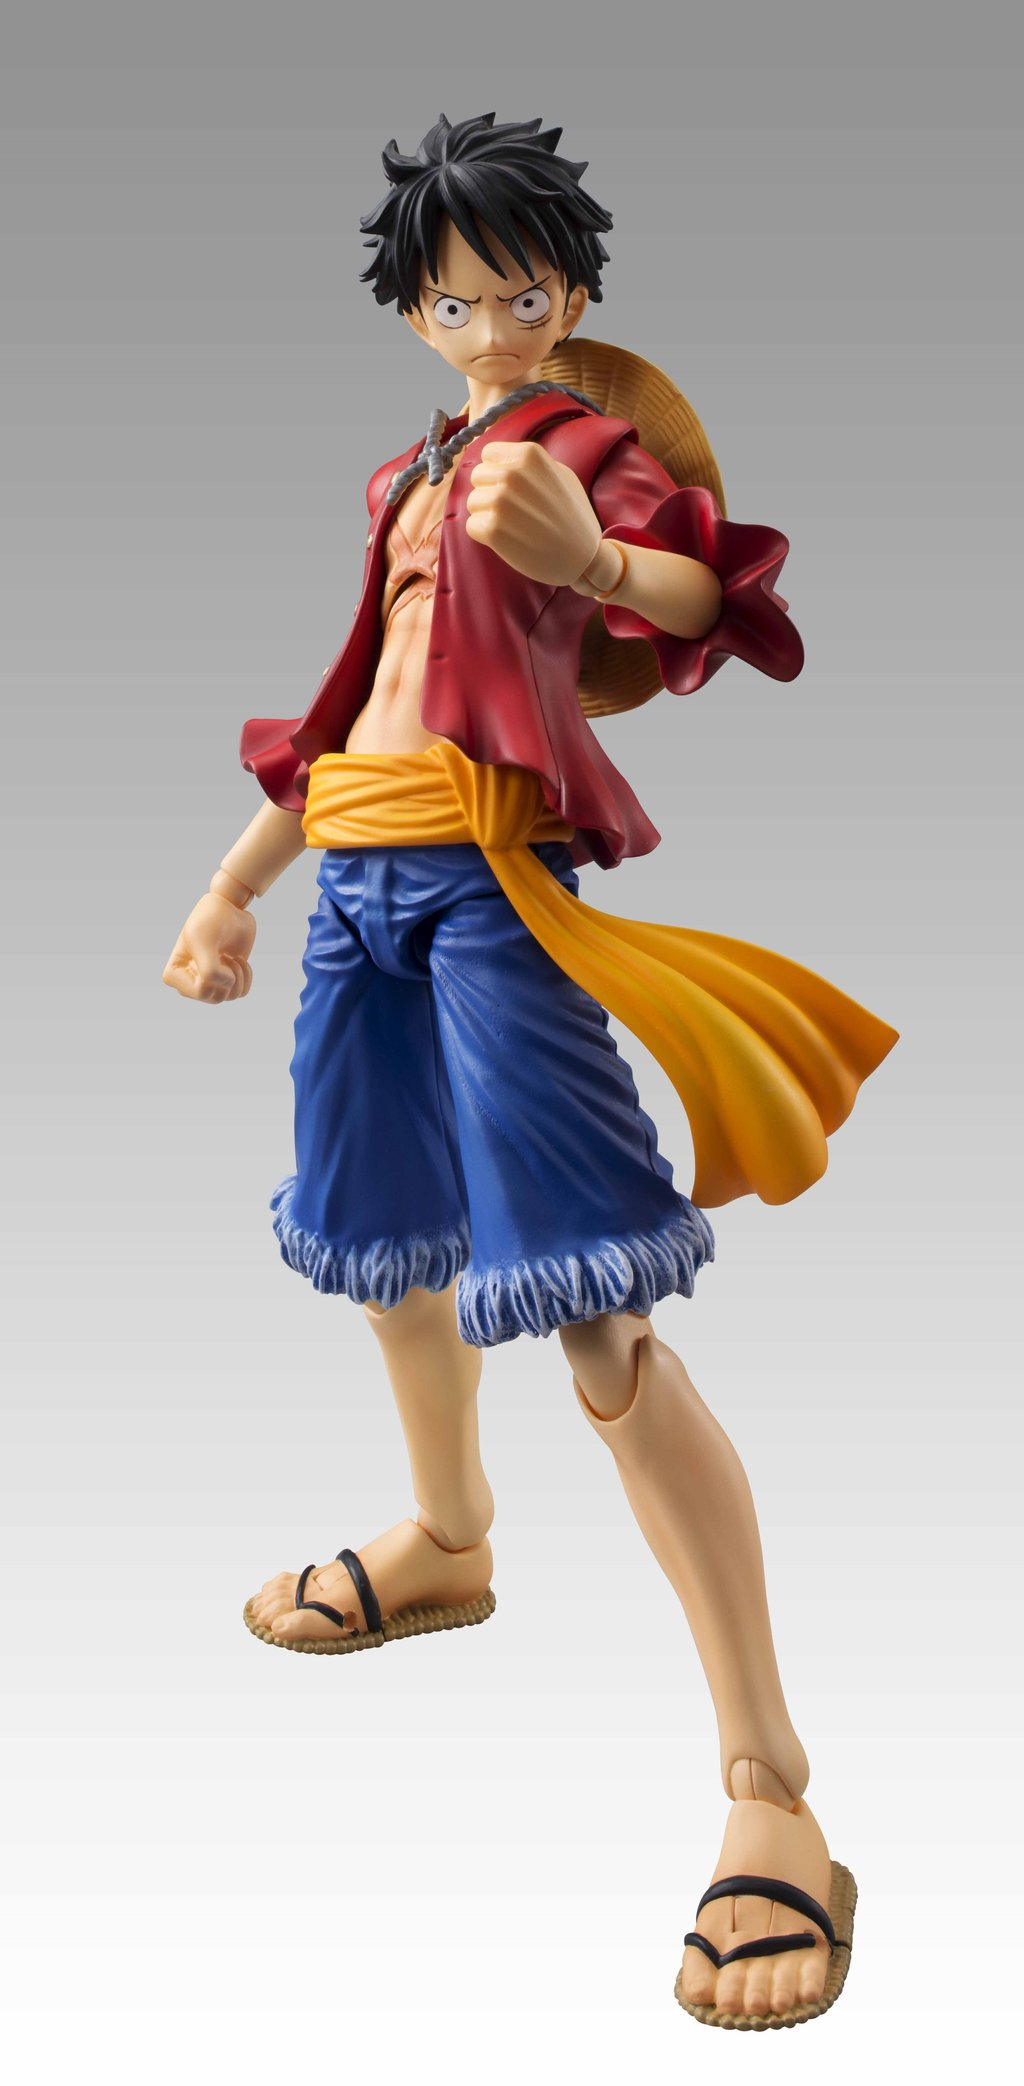 MegaHouse Variable Action Heroes ONE PIECE Monkey D. Luffy Action Figure.jpg